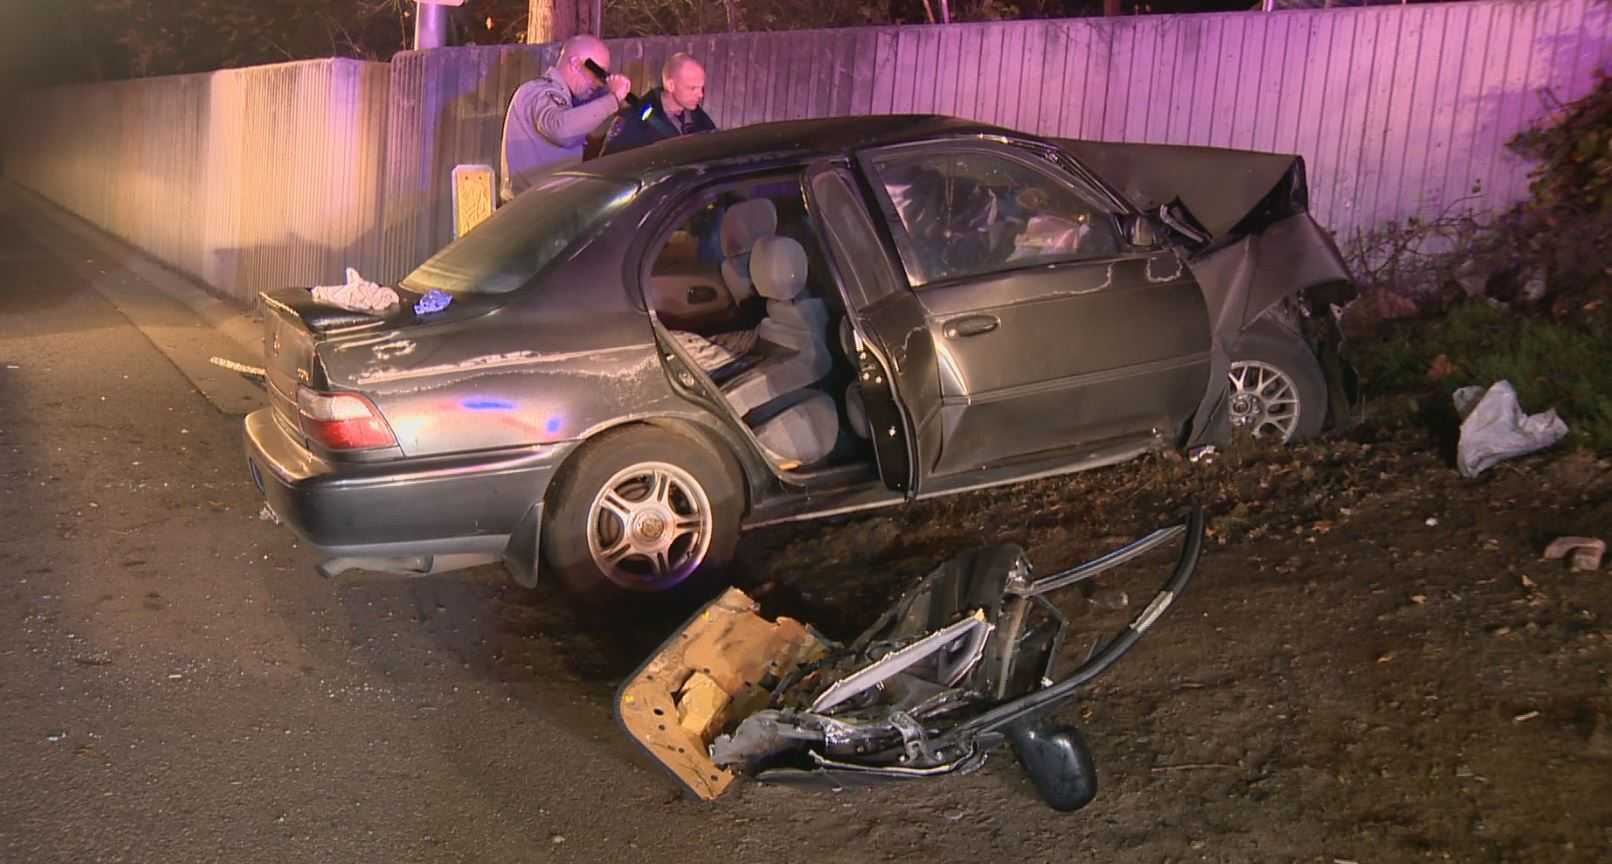 CHP: Sacramento driver charged with DUI in deadly crash - Sacramento